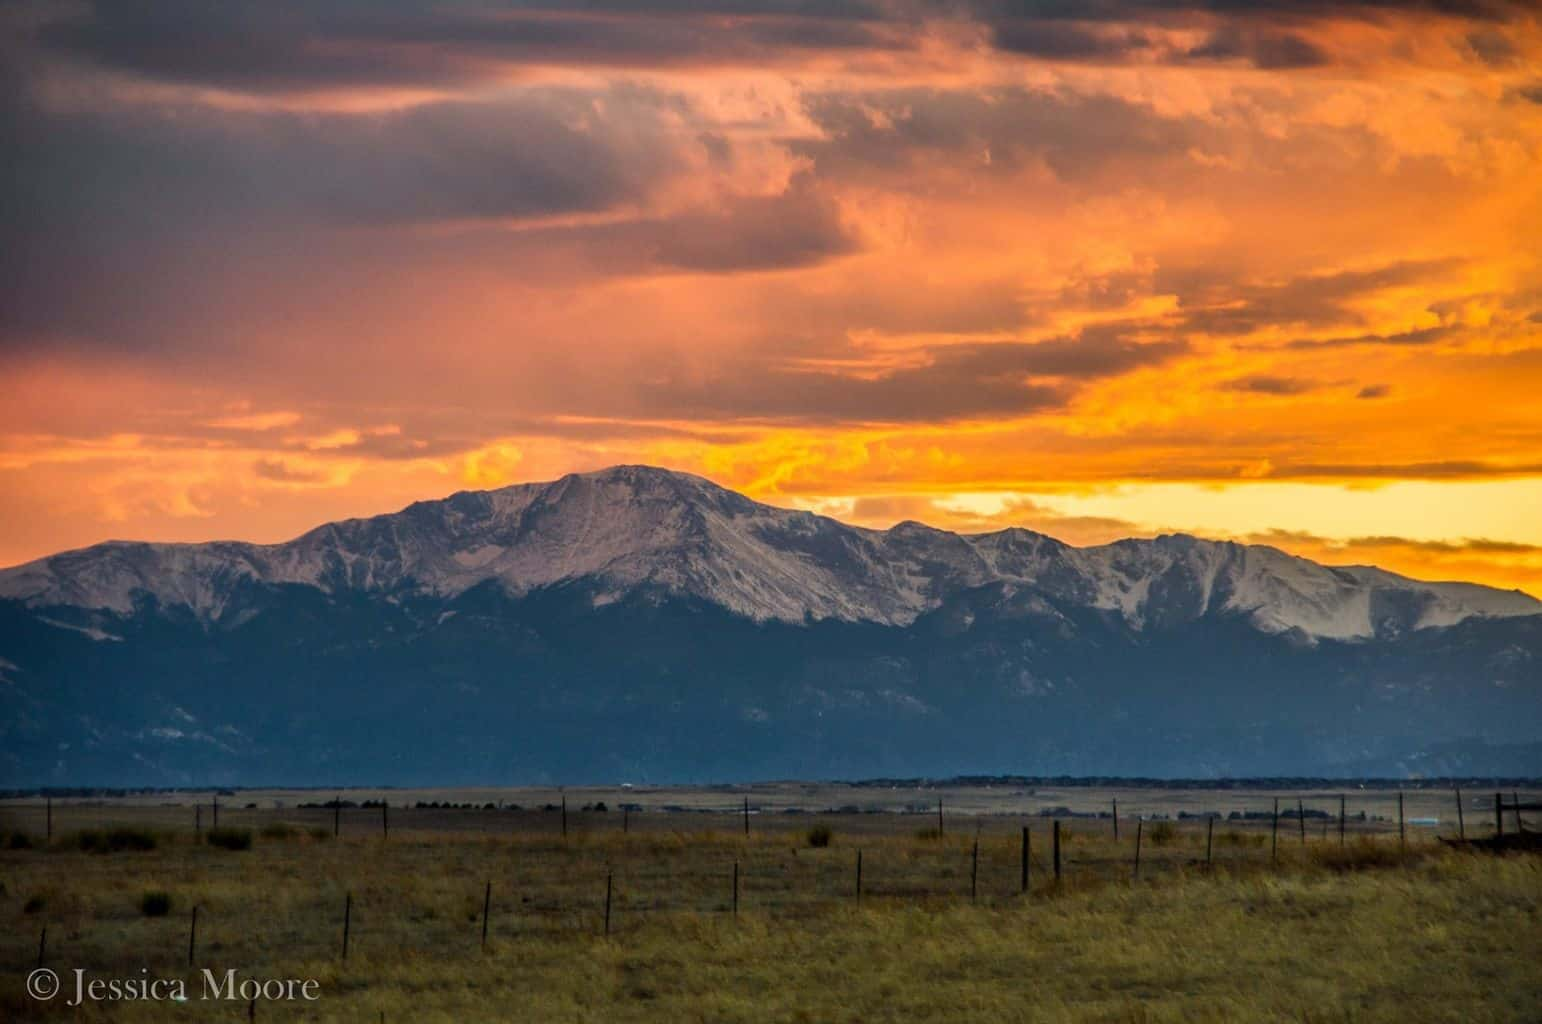 We were treated to a stunning sunset over Pikes Peak this evening in Colorado Springs.